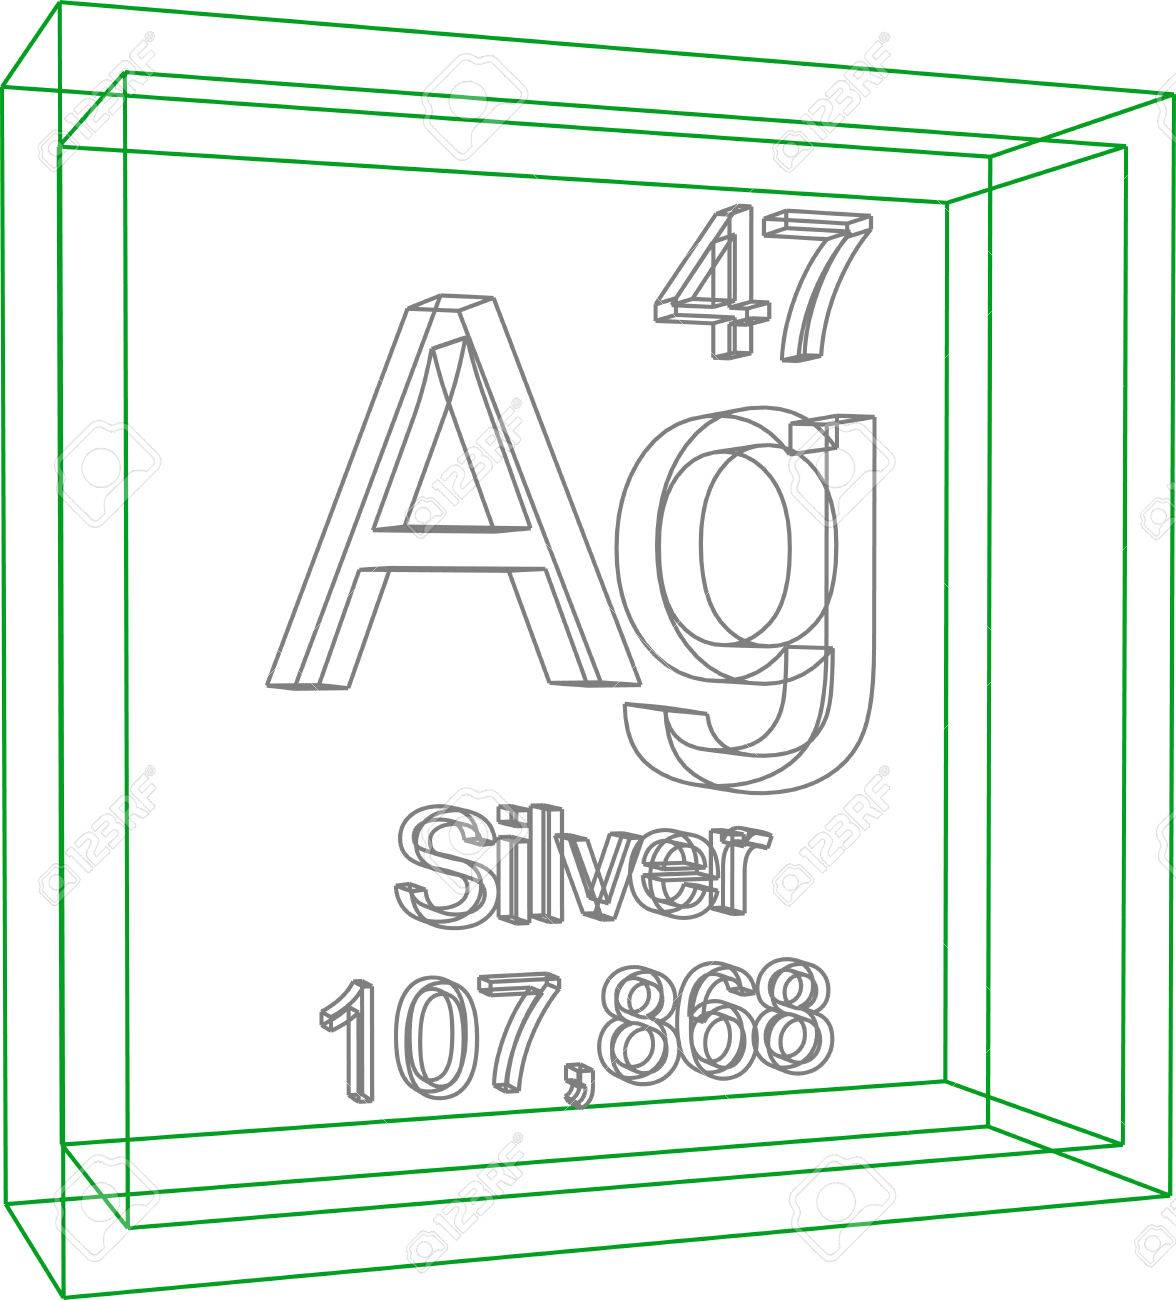 Periodic table of elements silver royalty free cliparts vectors periodic table of elements silver stock vector 57970372 urtaz Image collections